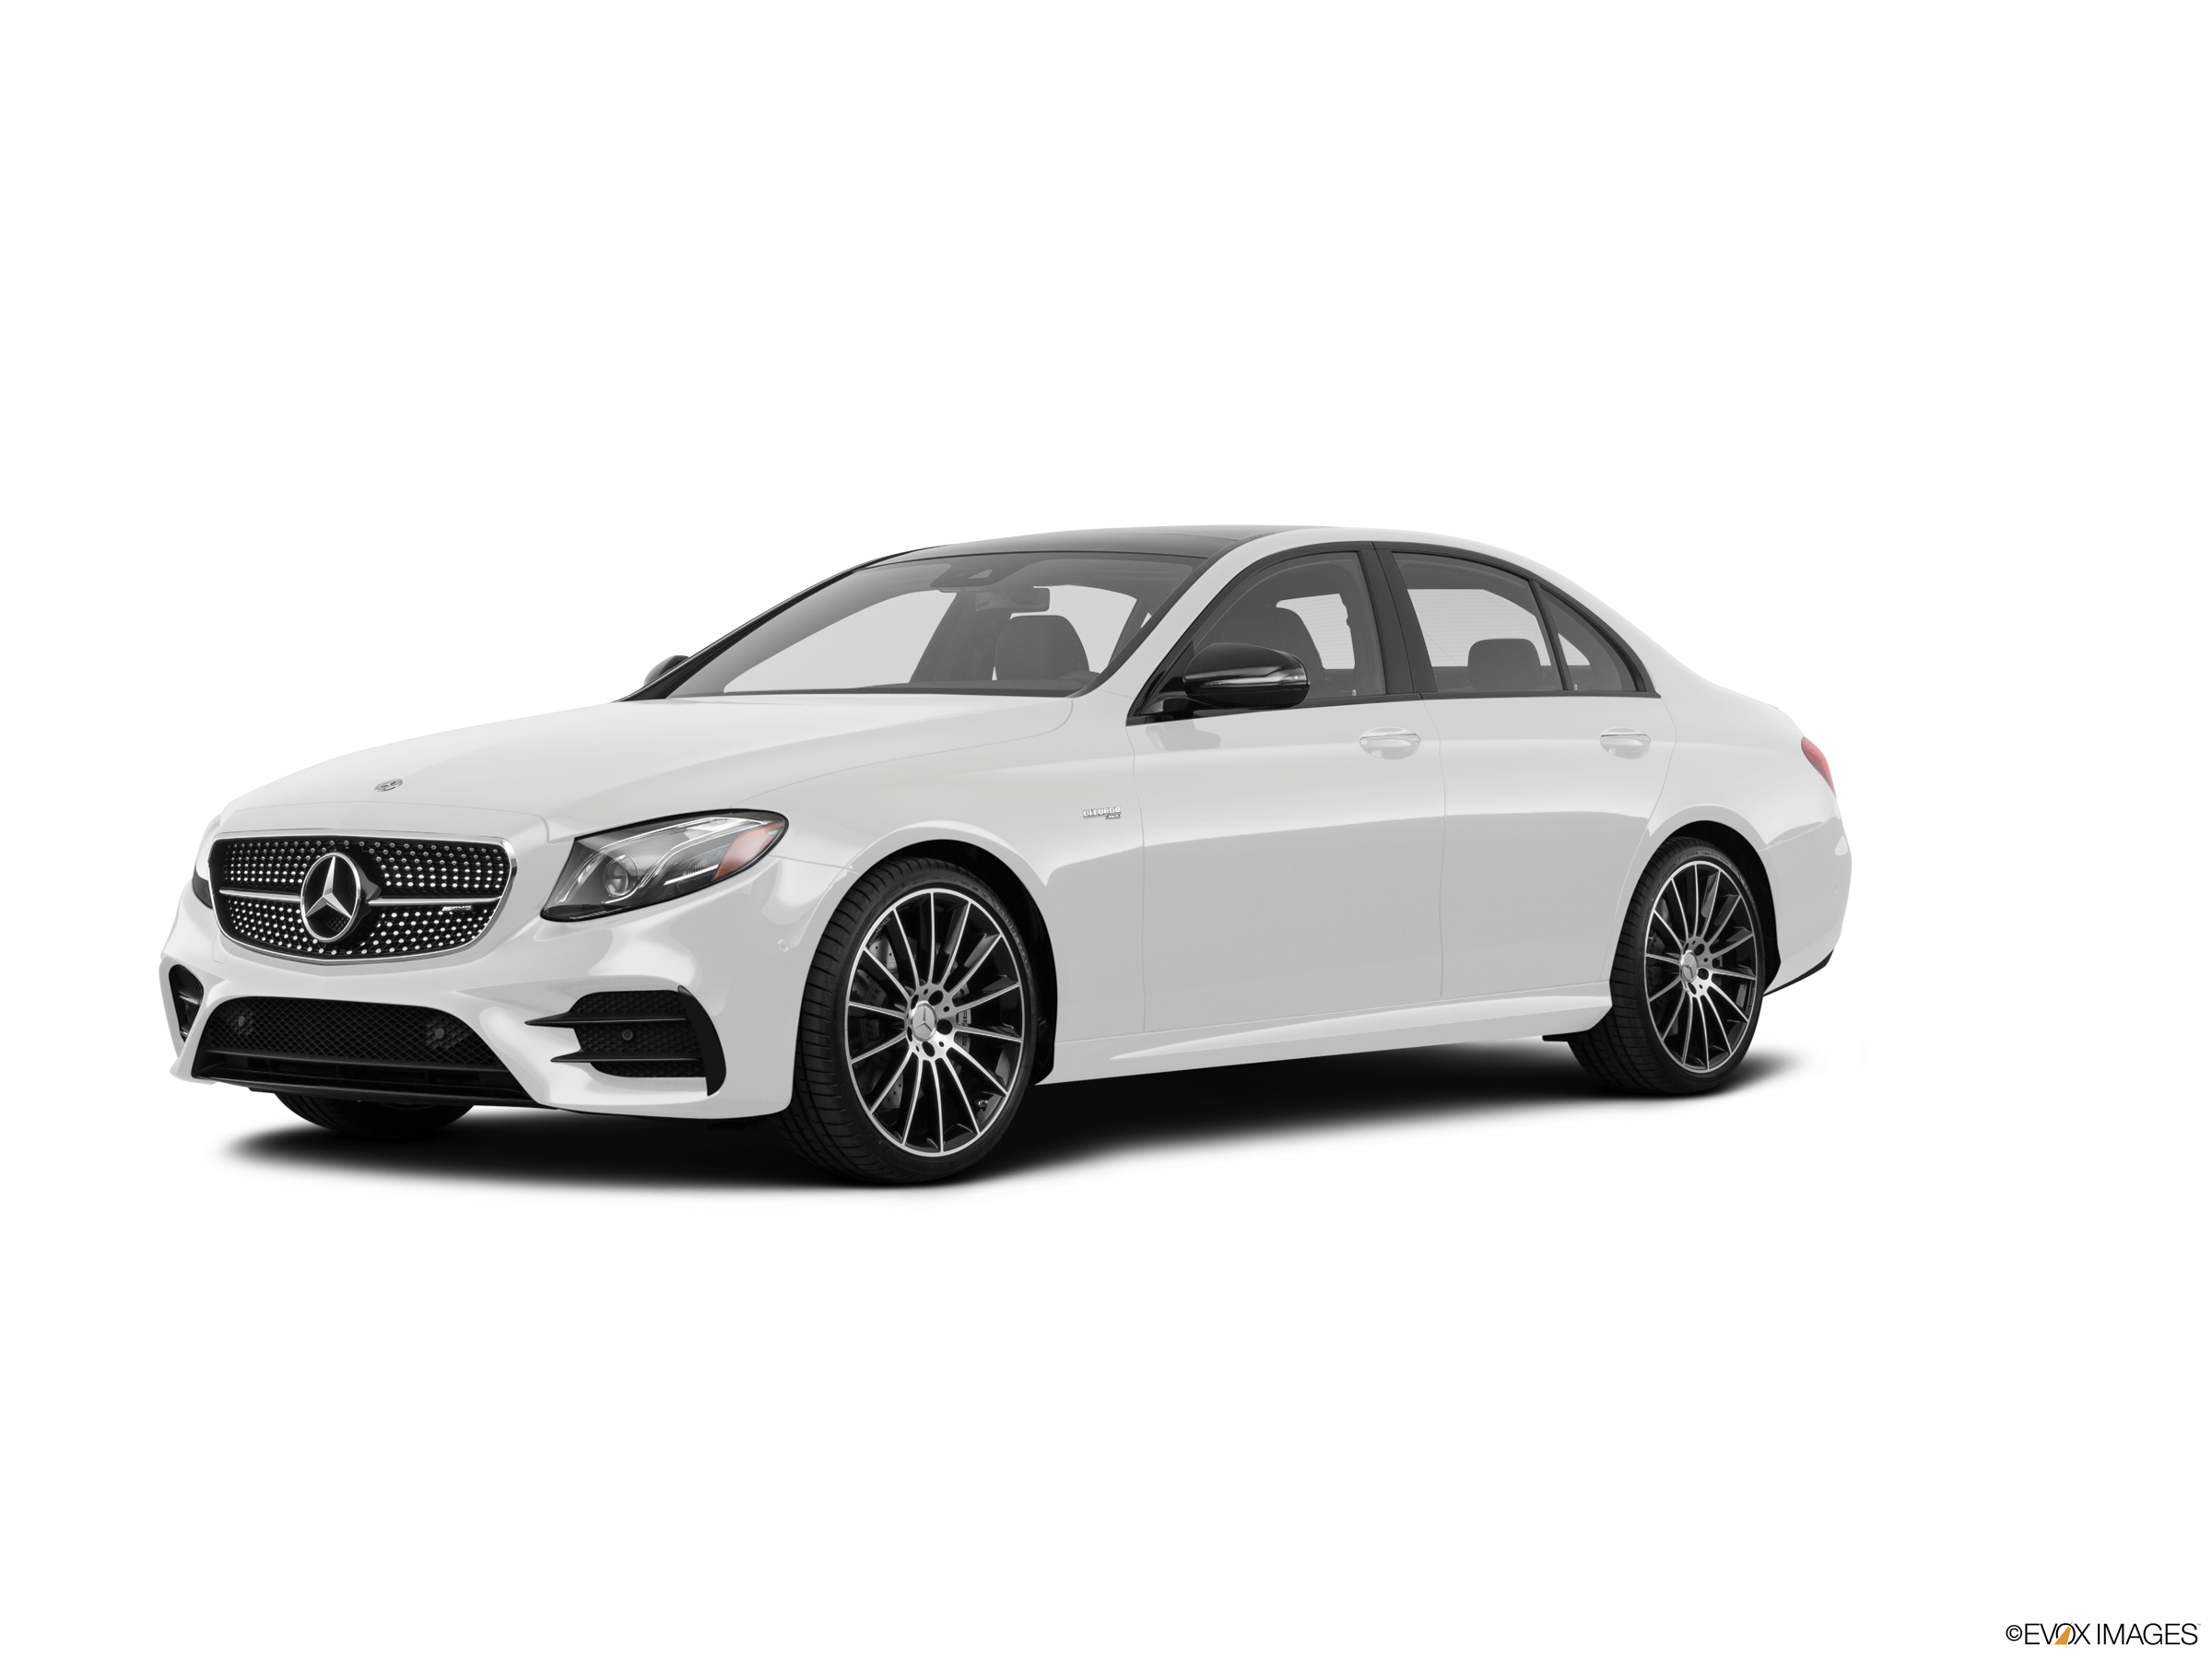 Highest Horsepower Luxury Vehicles of 2019 - 2019 Mercedes-Benz Mercedes-AMG E-Class